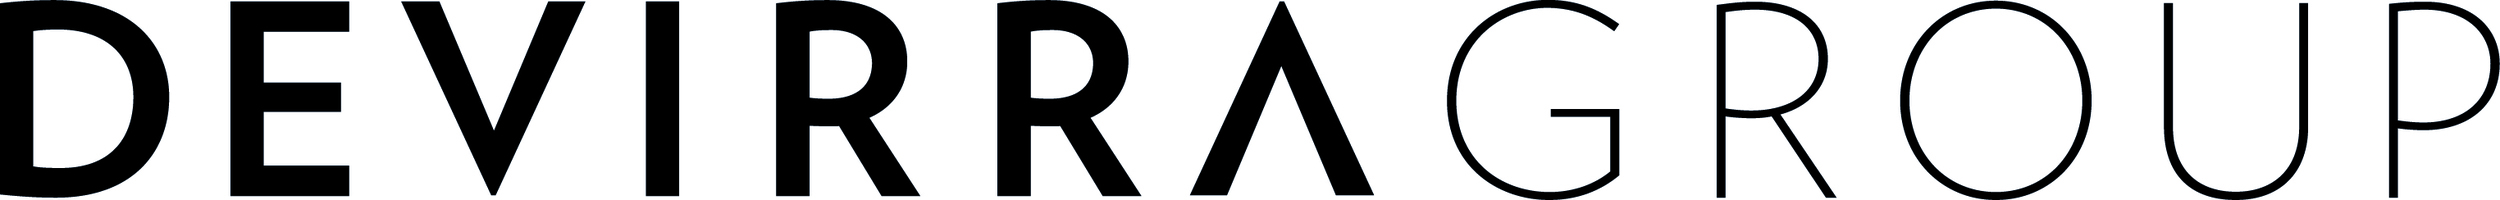 alfred_logo_90th.png